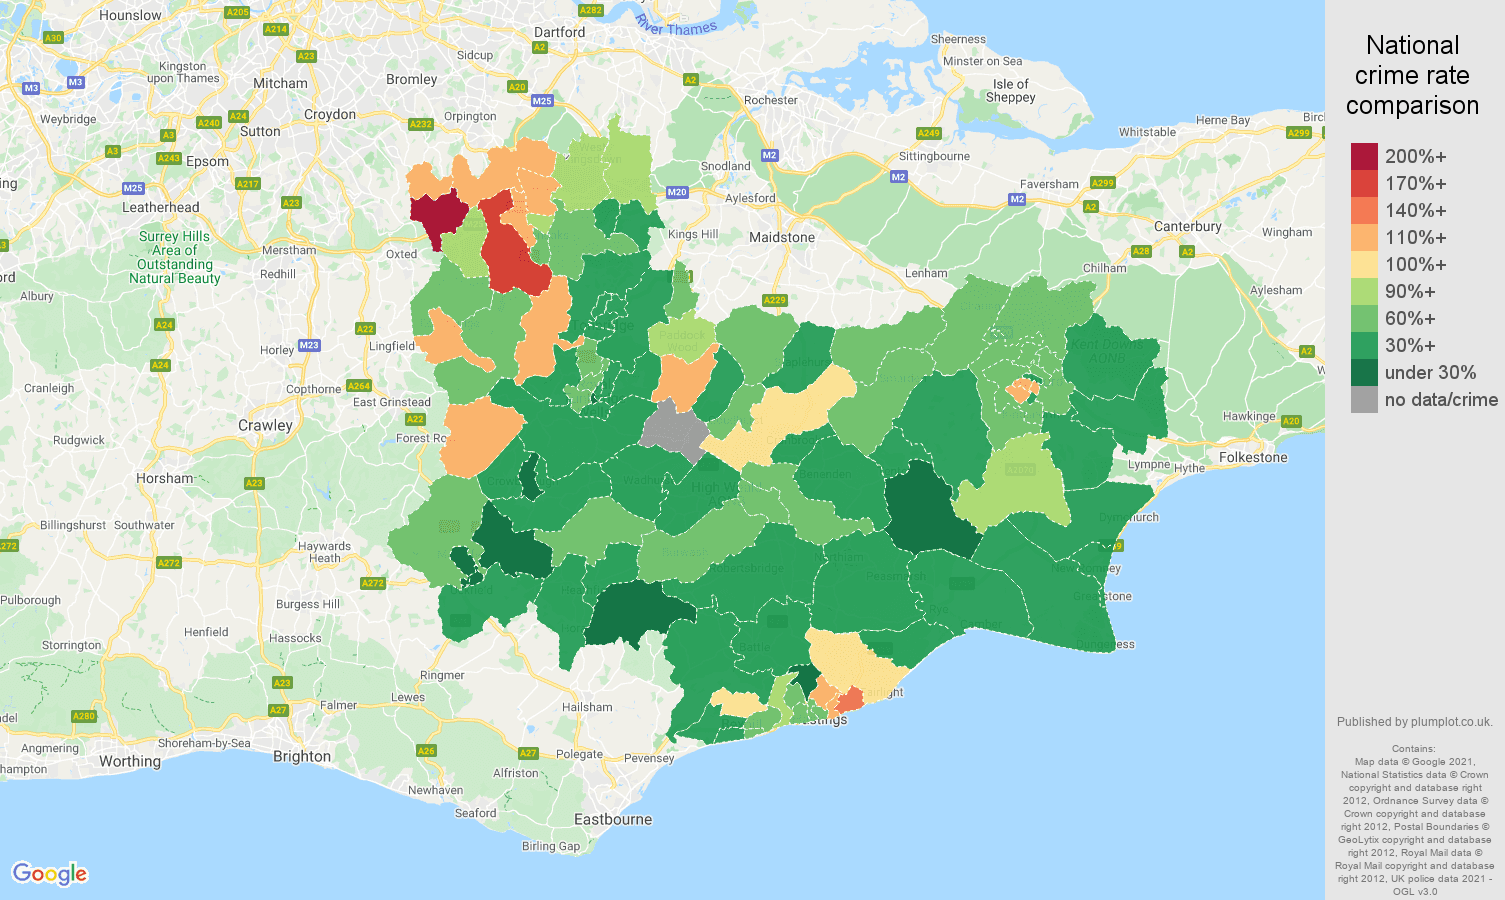 Tonbridge vehicle crime rate comparison map